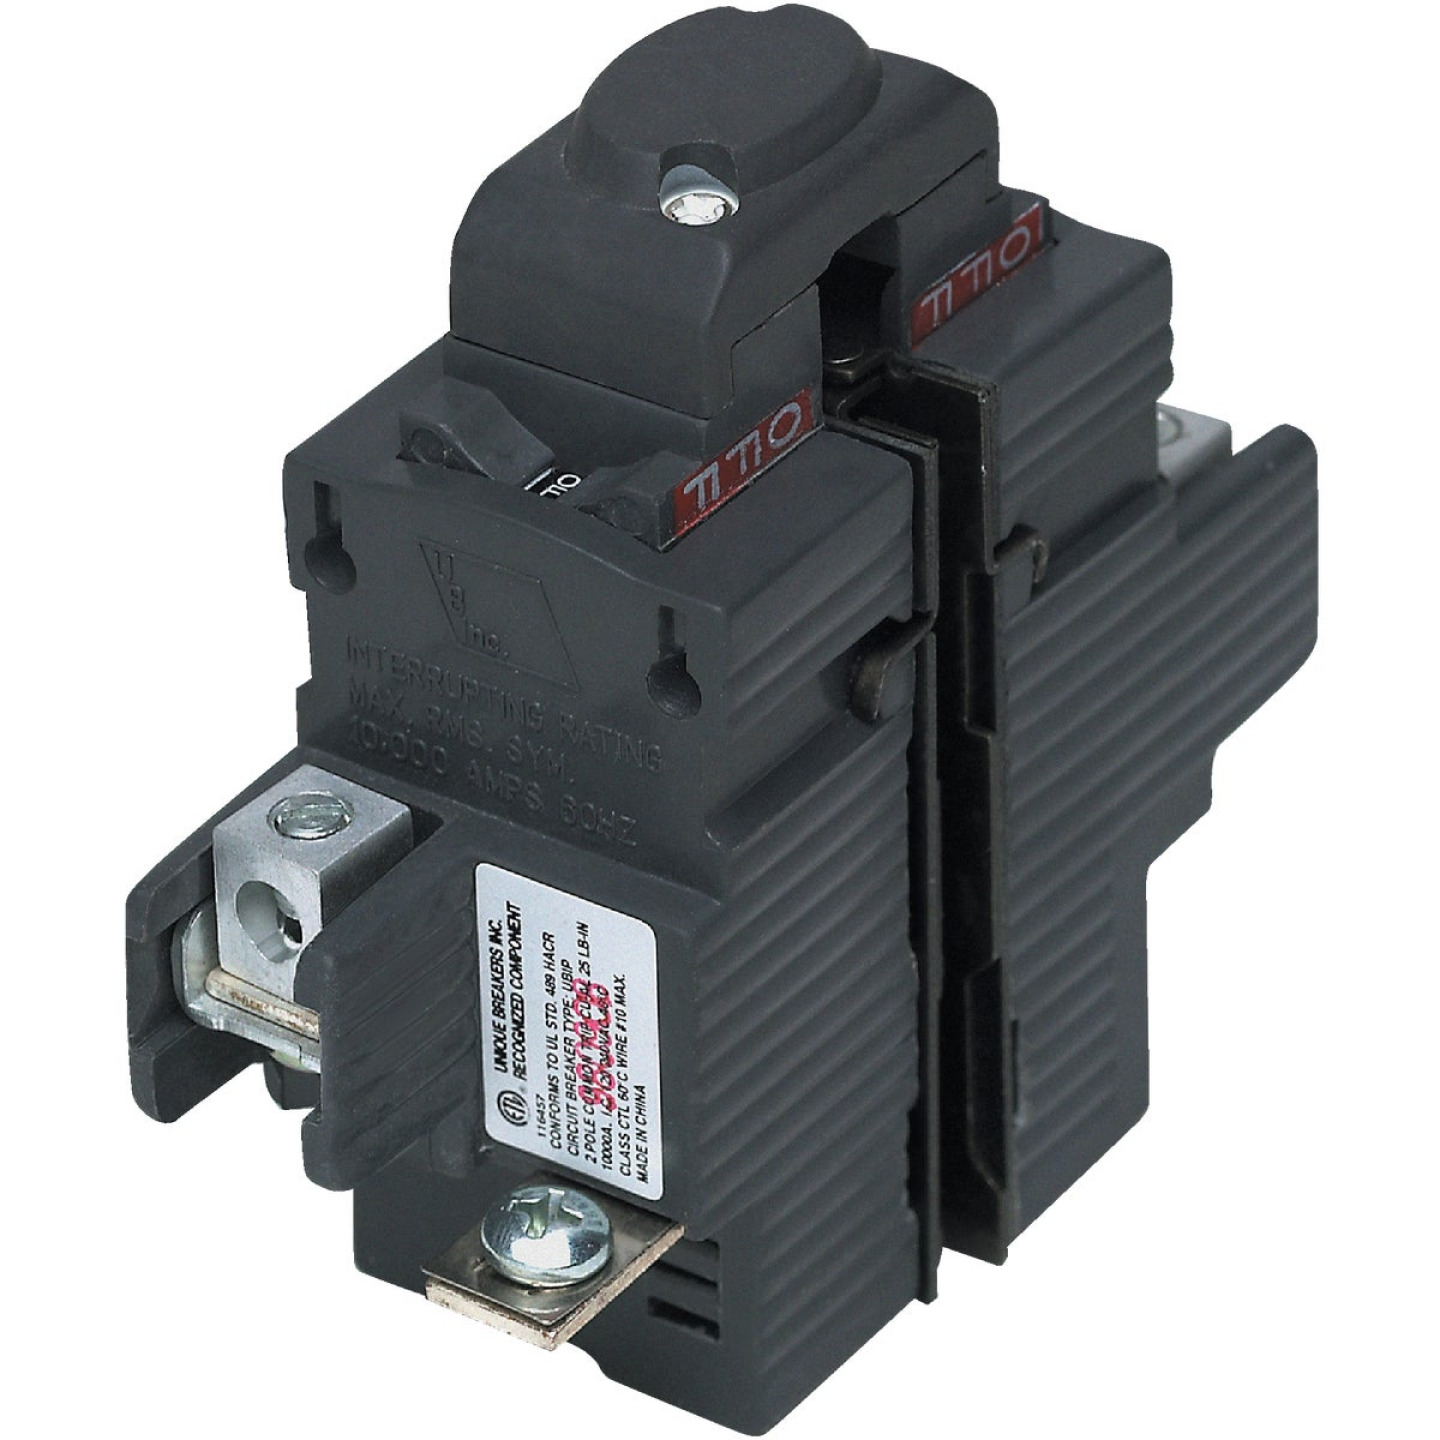 Connecticut Electric 20A Double-Pole Standard Trip Packaged Replacement Circuit Breaker For Pushmatic Image 1